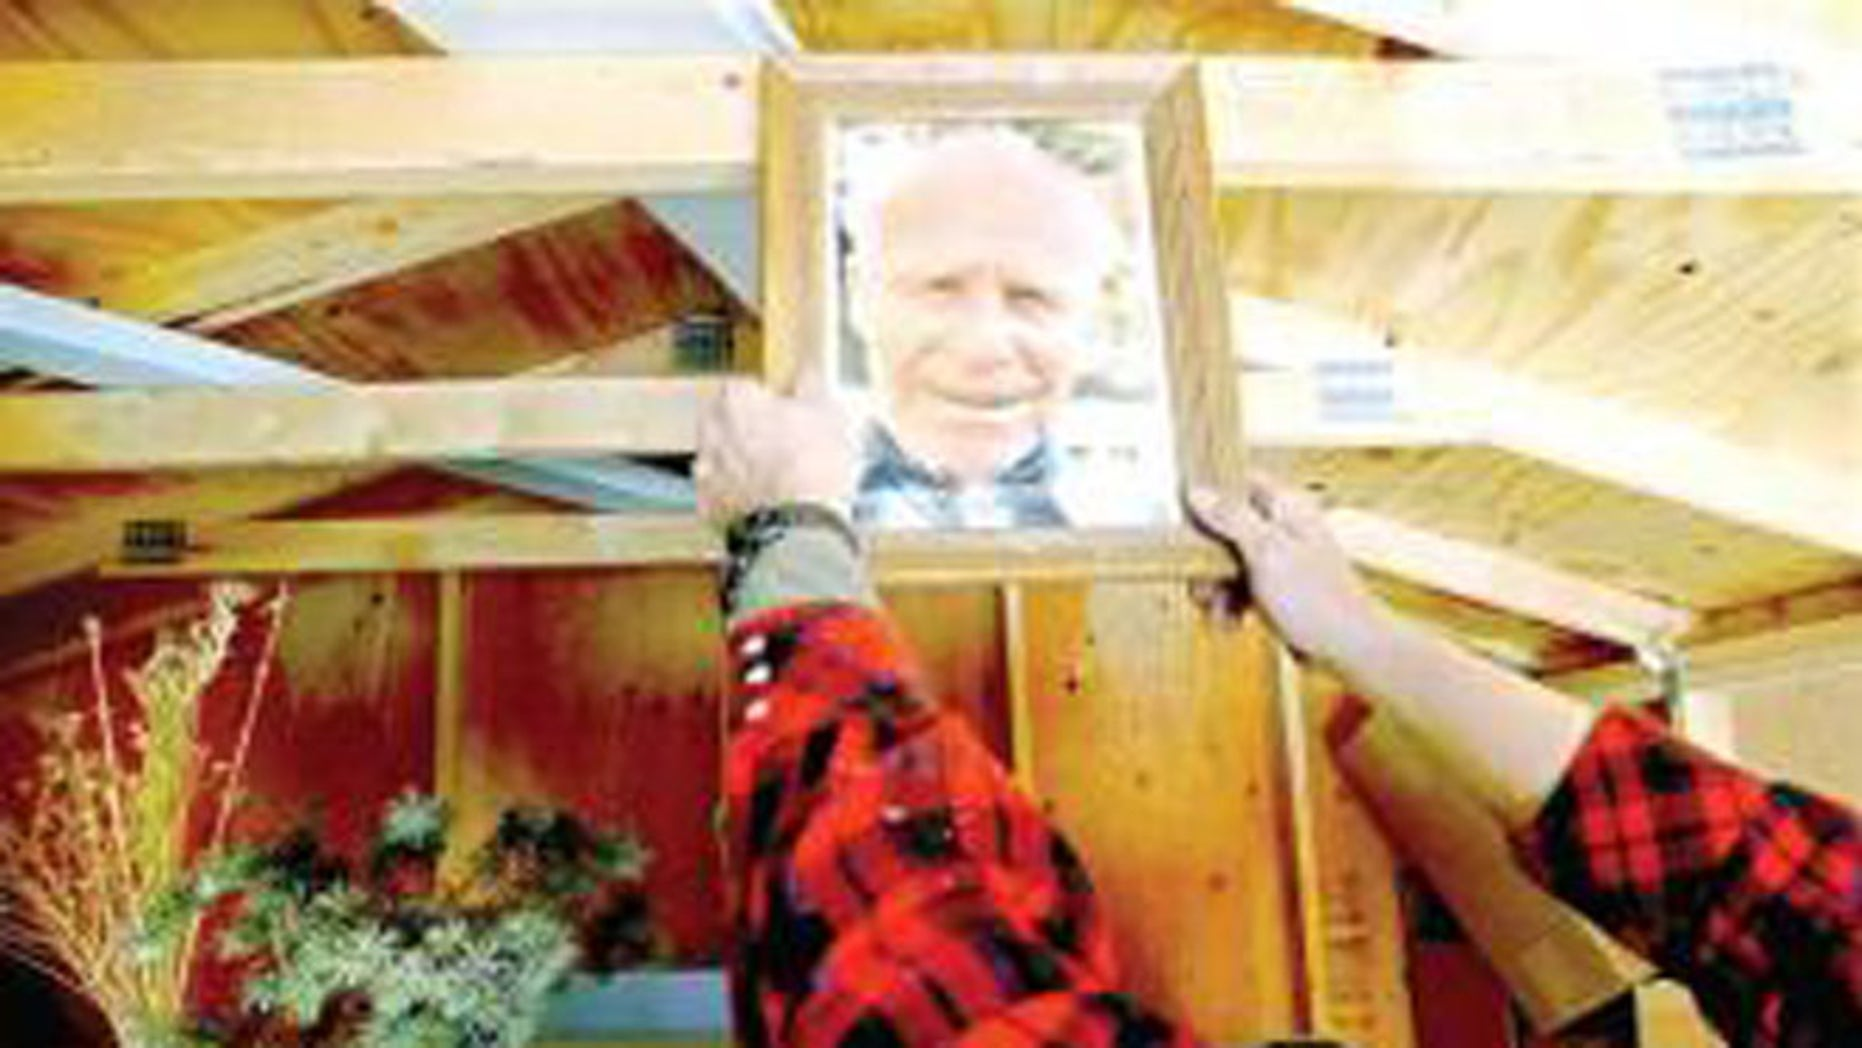 Frozen Dead Guy Days festival in Colorado pays homage to Bredo Morstoel who is preserved in dry ice in a shed.